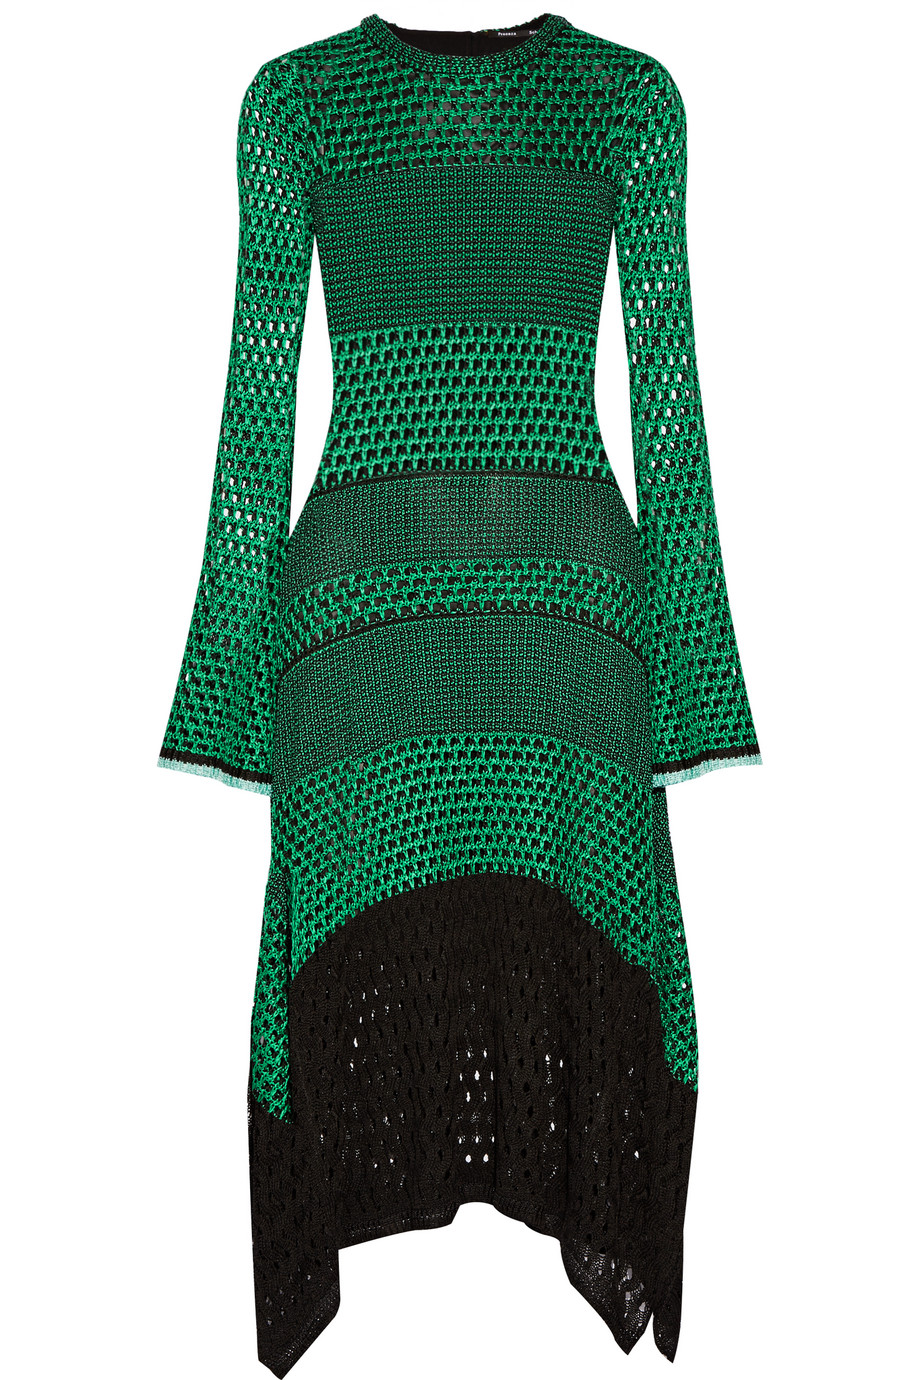 Proenza Schouler Asymmetric Crocheted Midi Dress, Forest Green, Women's